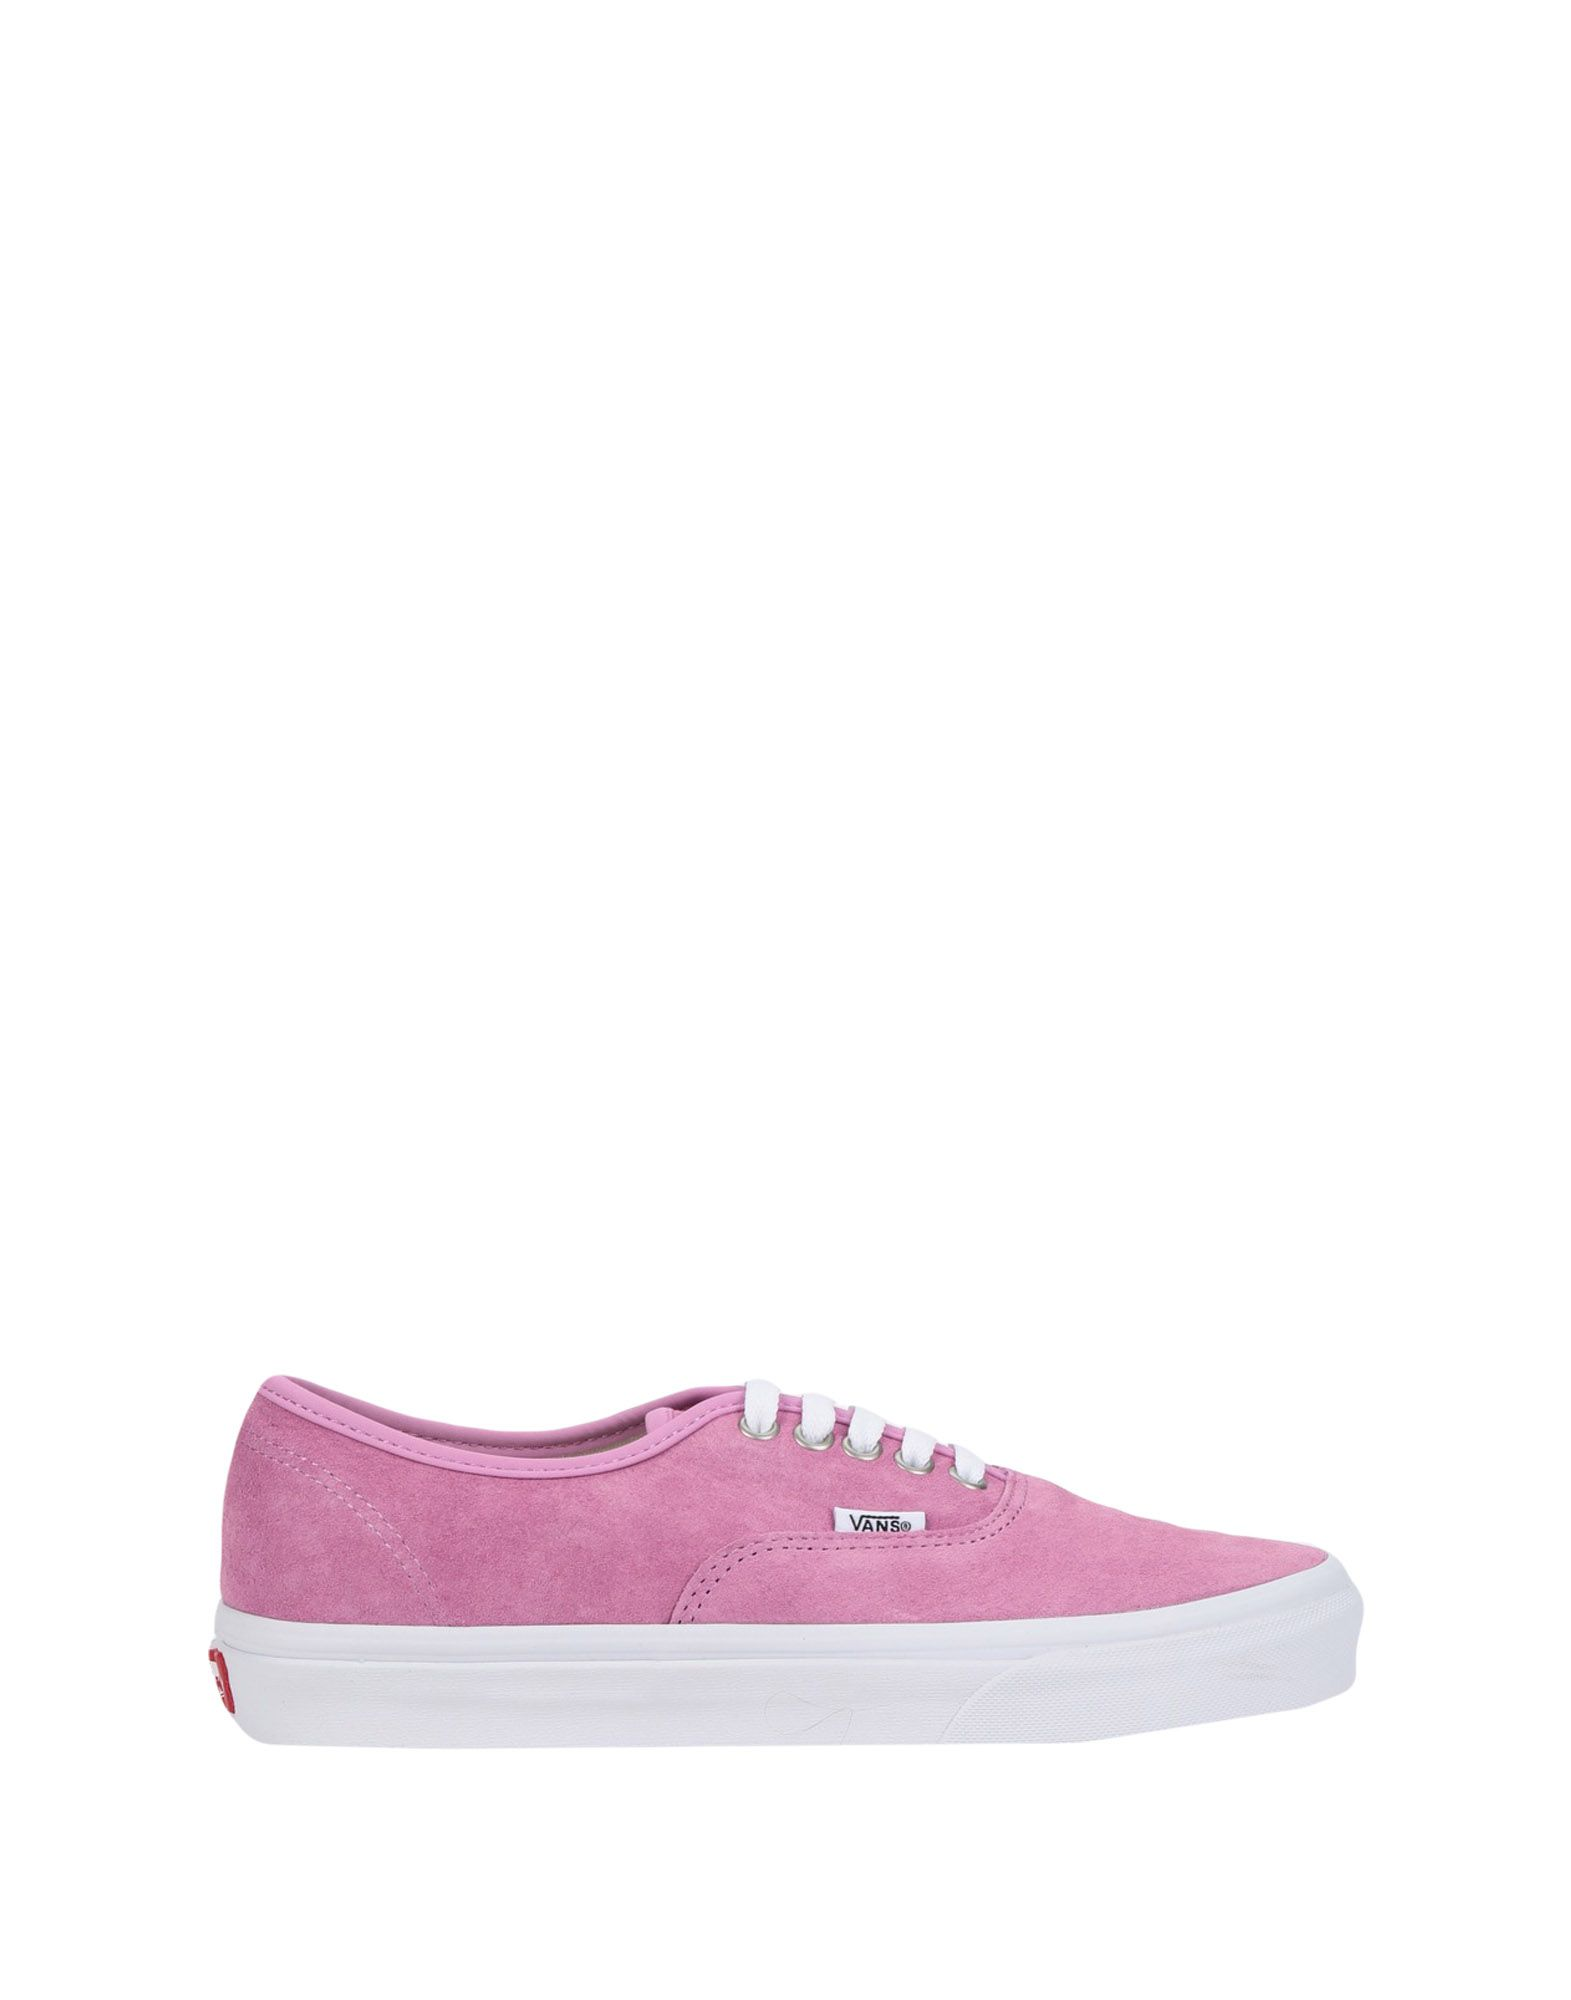 Baskets Vans Ua Authentic (Pig Suede) - Femme - Confortable Baskets Vans Violet clair Confortable - et belle d12bdf